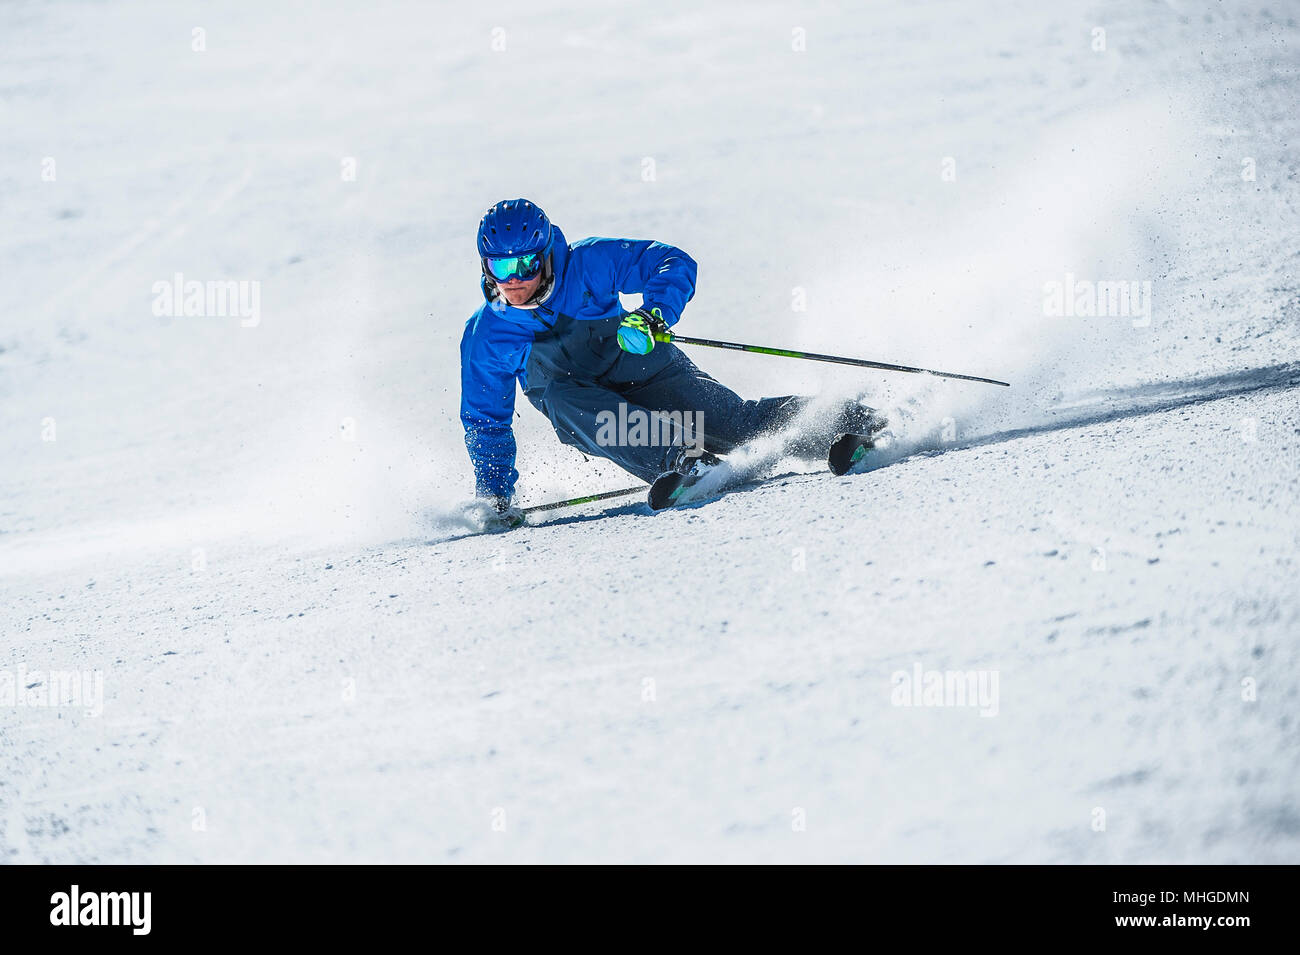 A male skier carving turns on a piste in the French alpine resort of Courchevel. Stock Photo